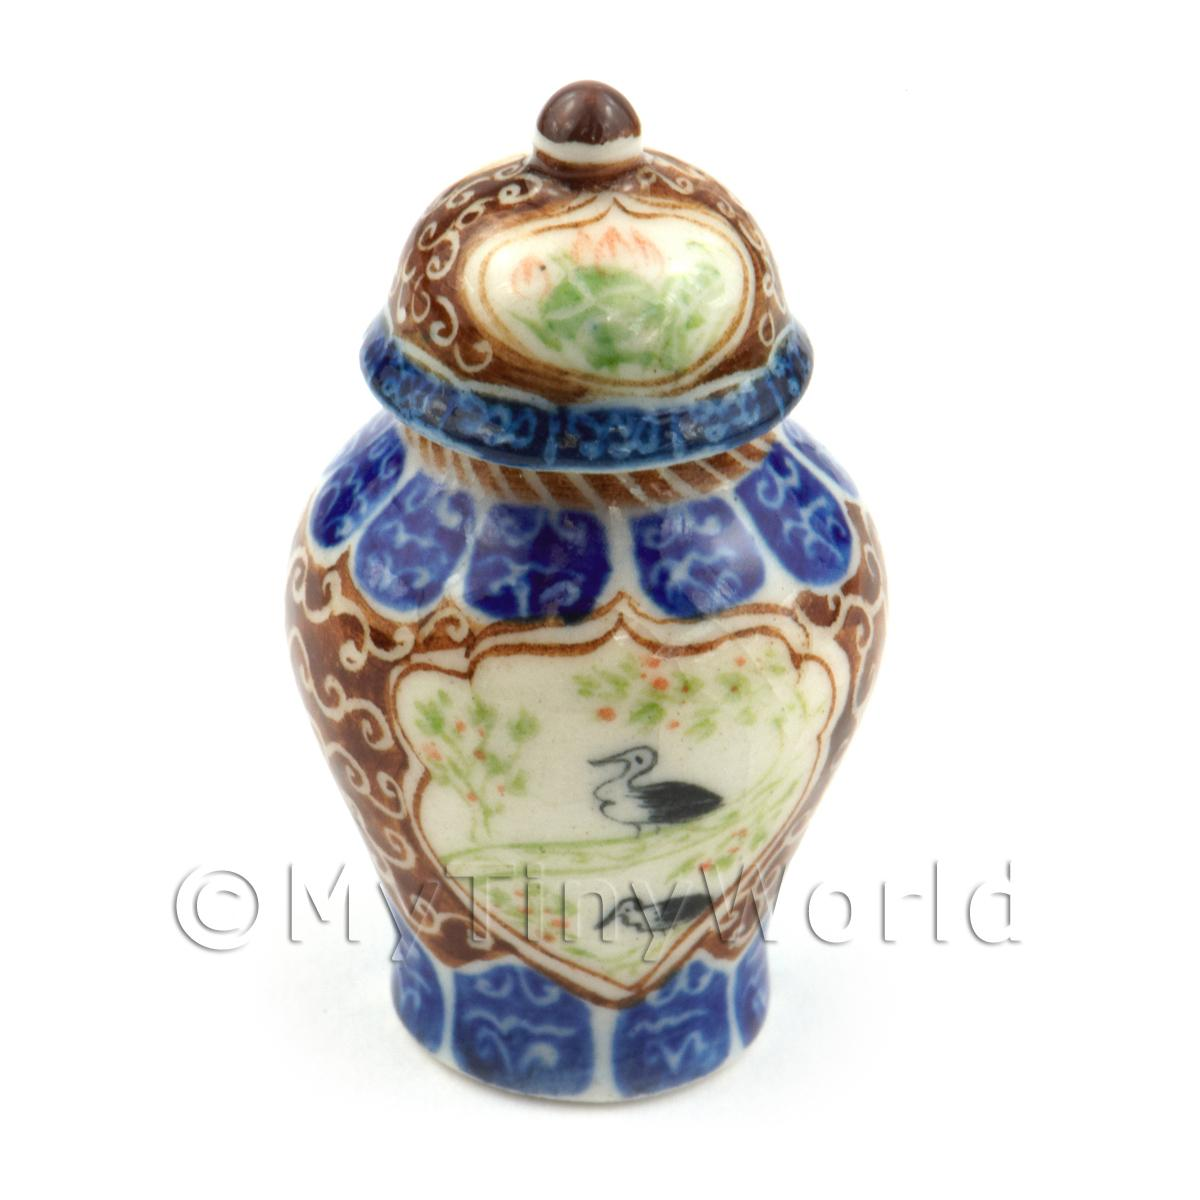 Dolls House Miniature Ultra Fine Porcelain Dynasty Vase